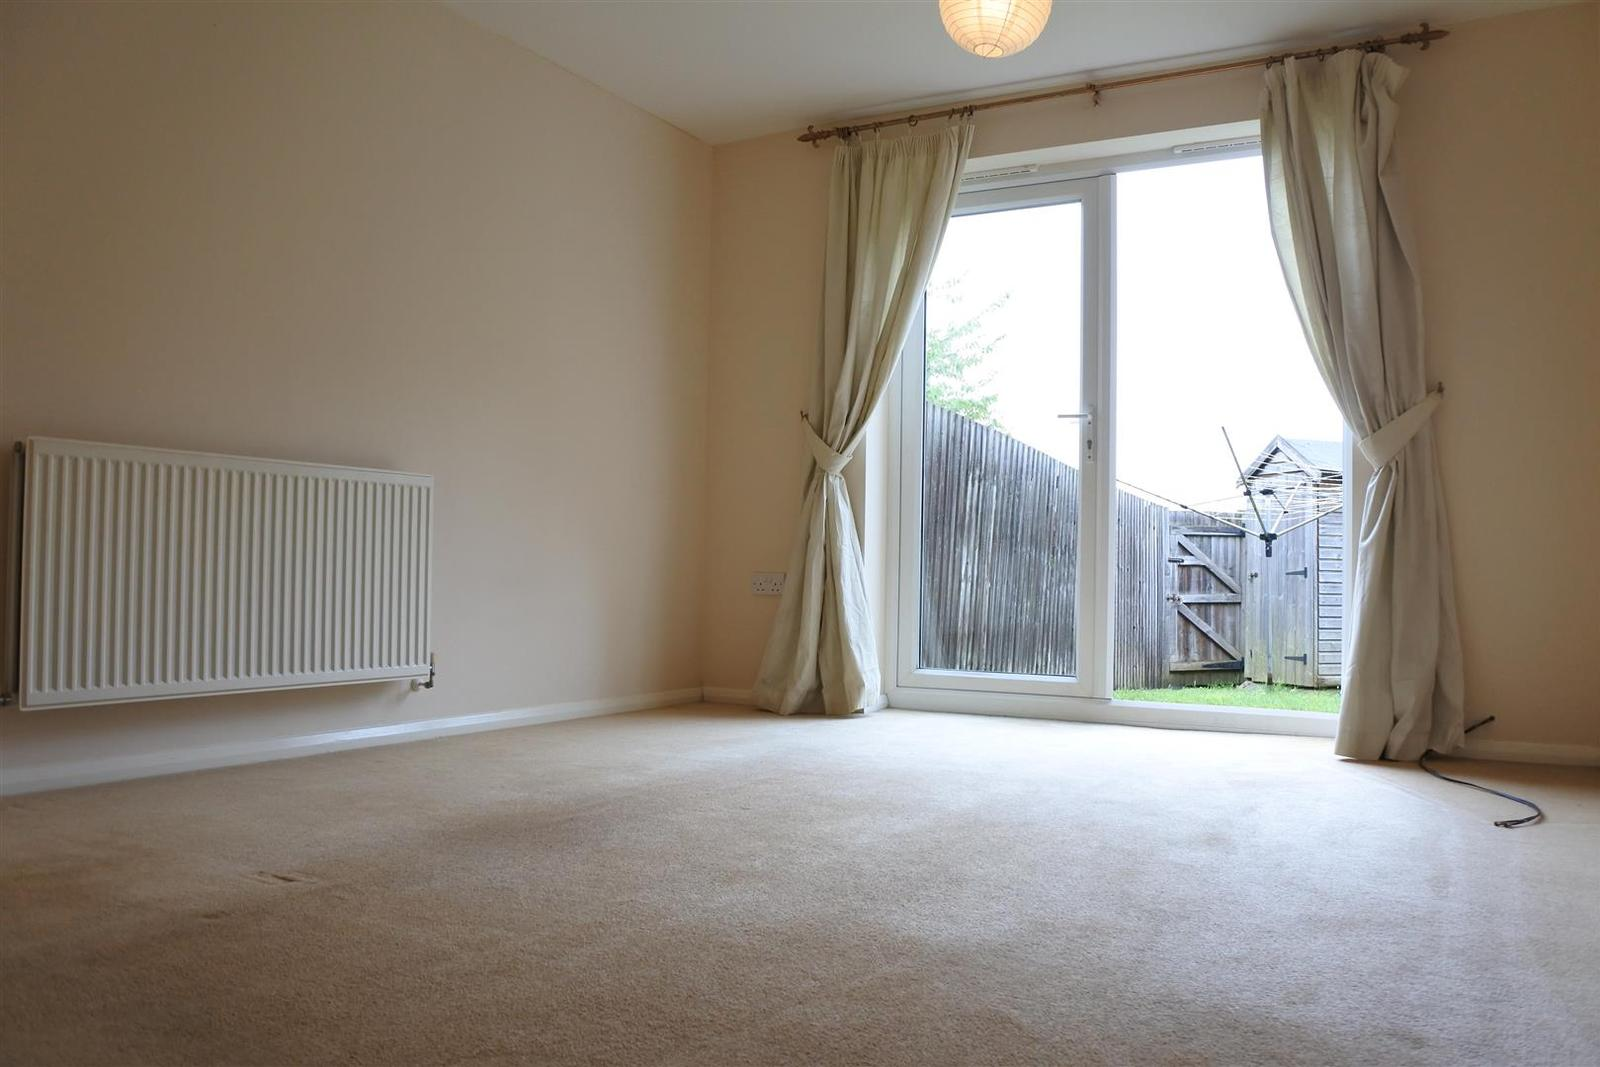 2 Bedrooms Apartment Flat for sale in Hudson Way, Grantham